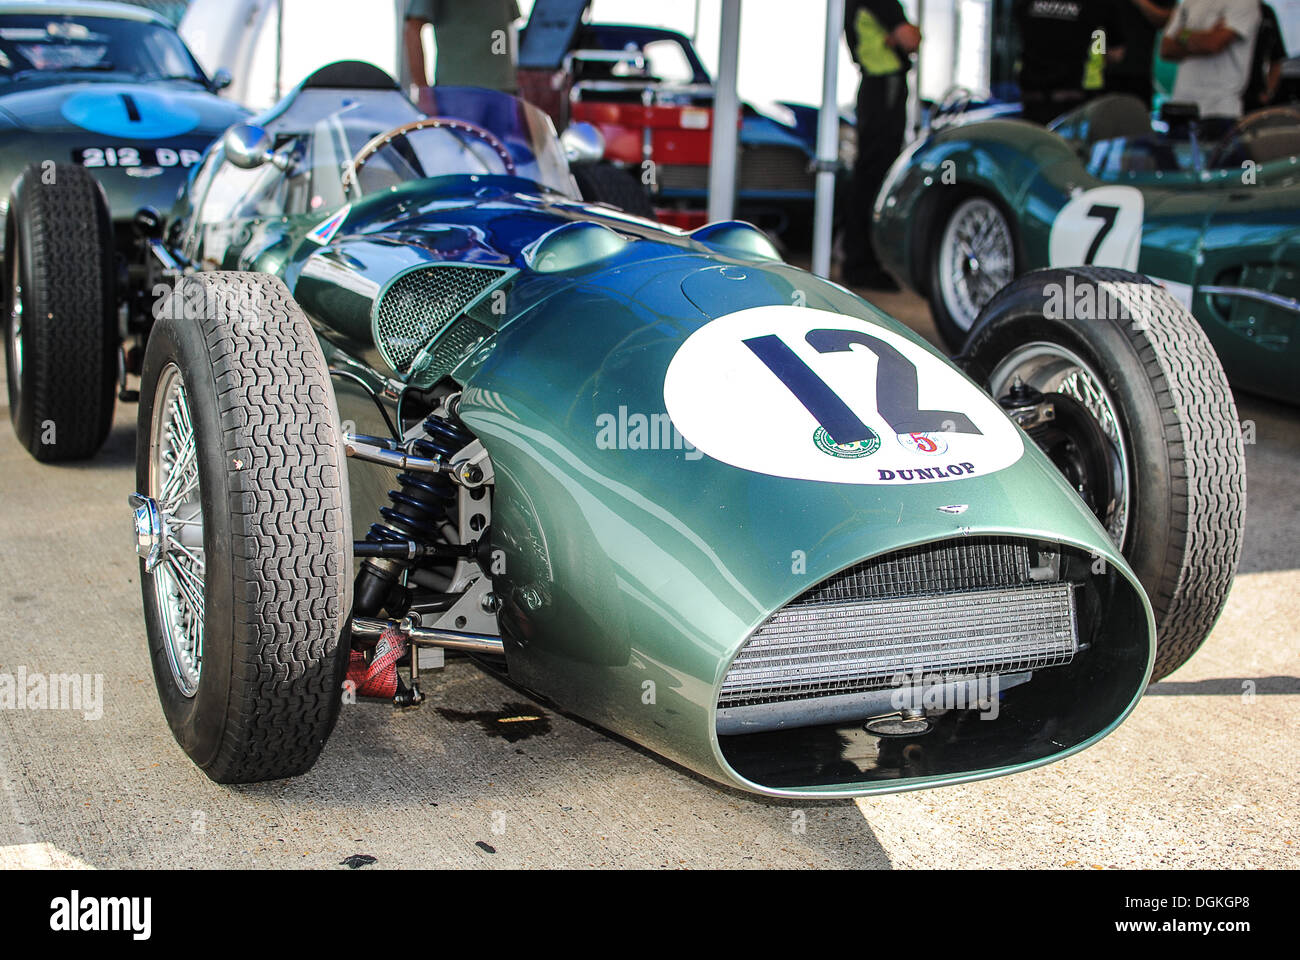 Aston Martin Classic Race Car At Silverstone Circuit Stock Photo Alamy